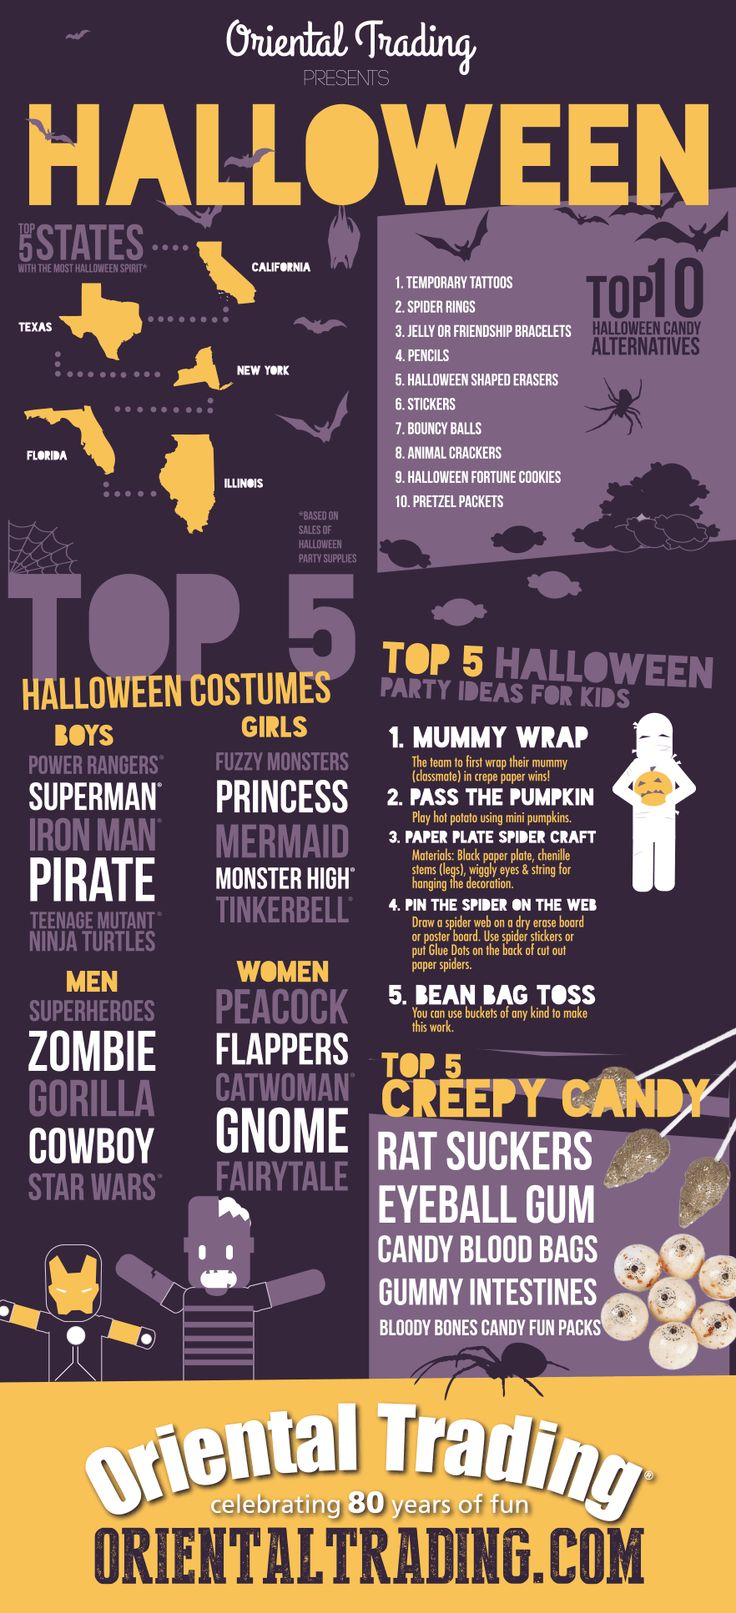 [INFOGRAPHIC] Halloween Fun Facts and Ghoulishly Good Ideas